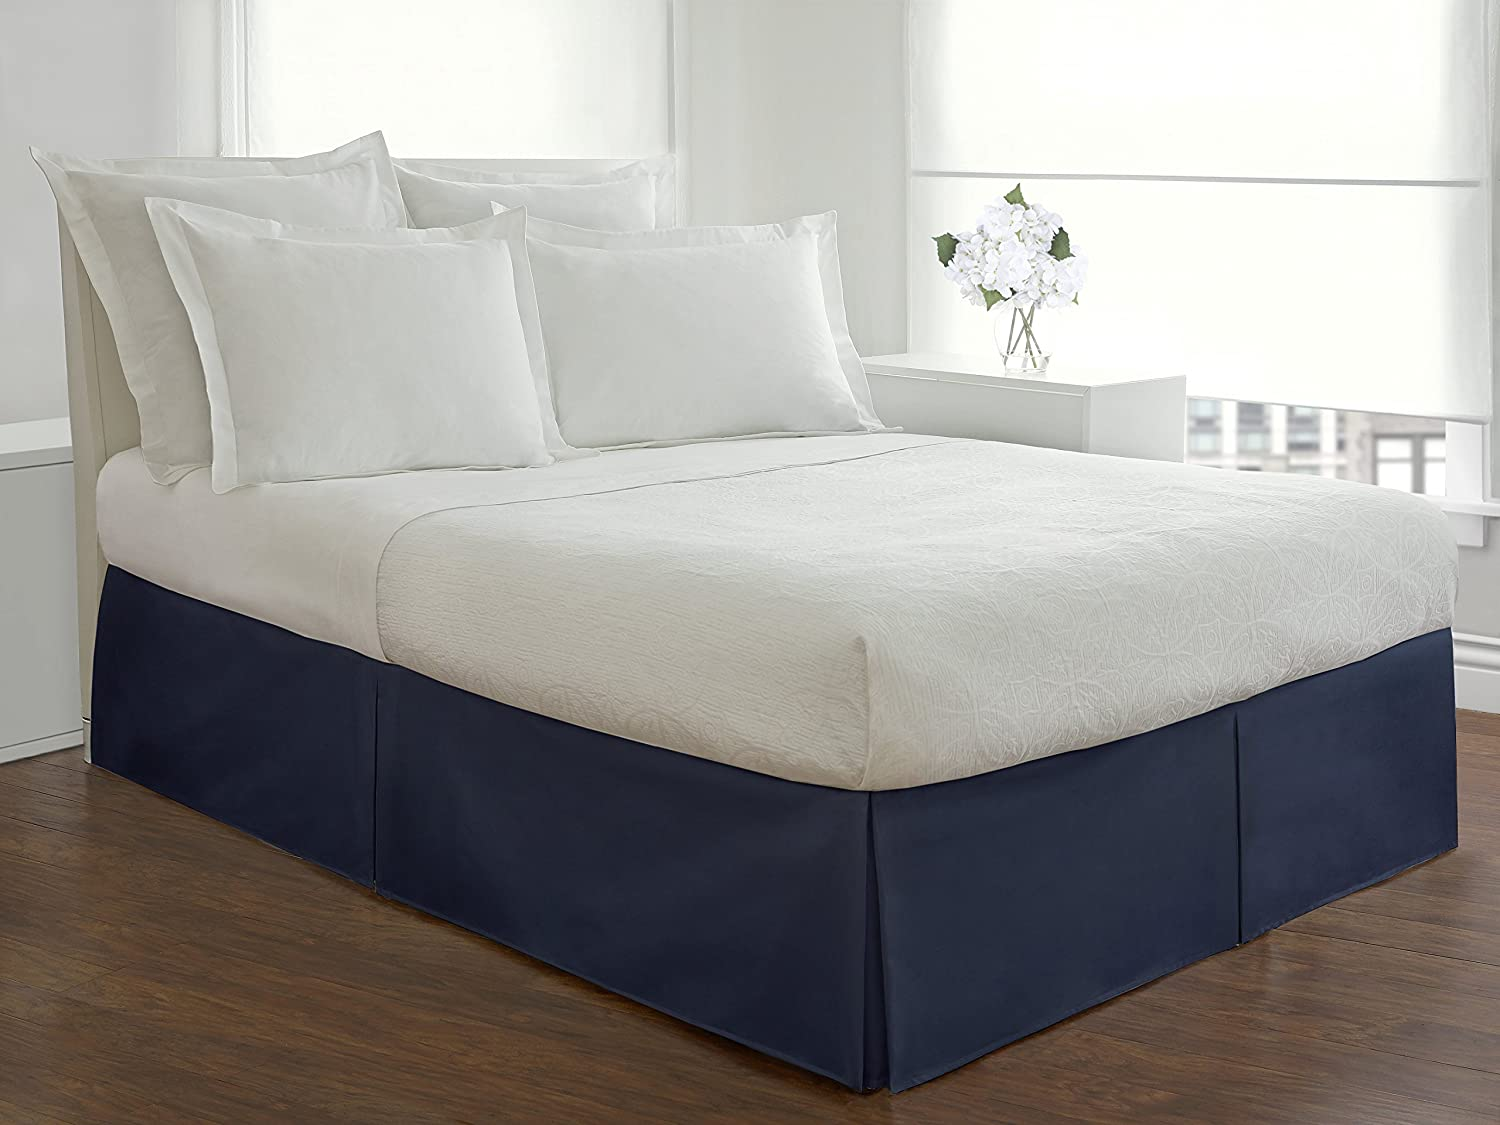 Lux Hotel Bedding Tailored Bedskirt